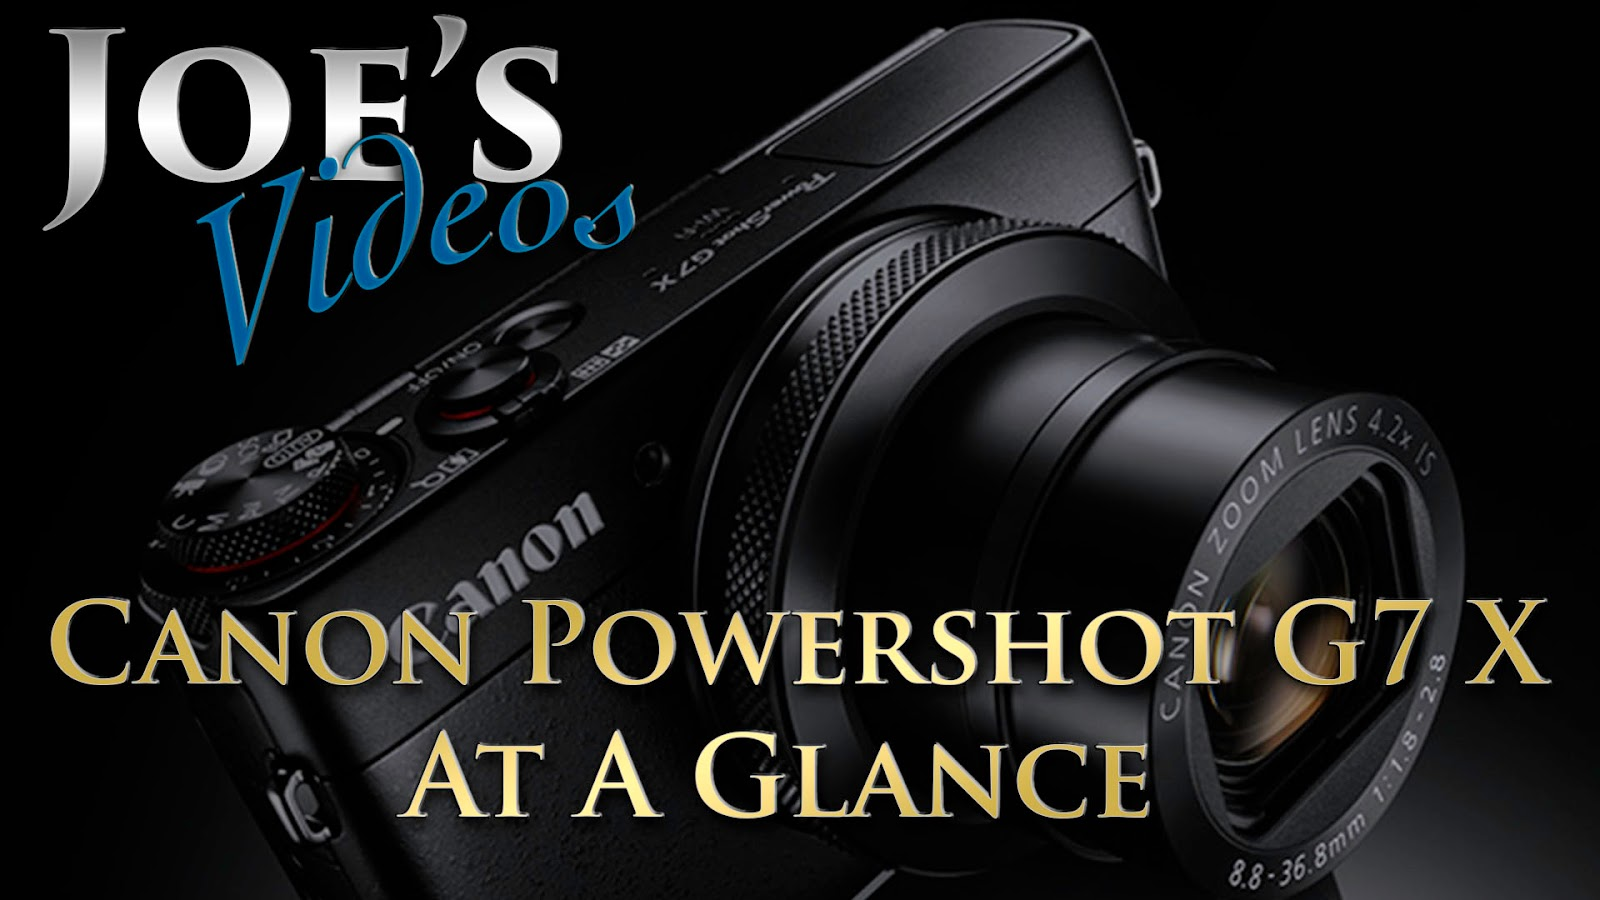 Canon Powershot G7 X At A Glance, Lets Review The Specs | Joe's Videos